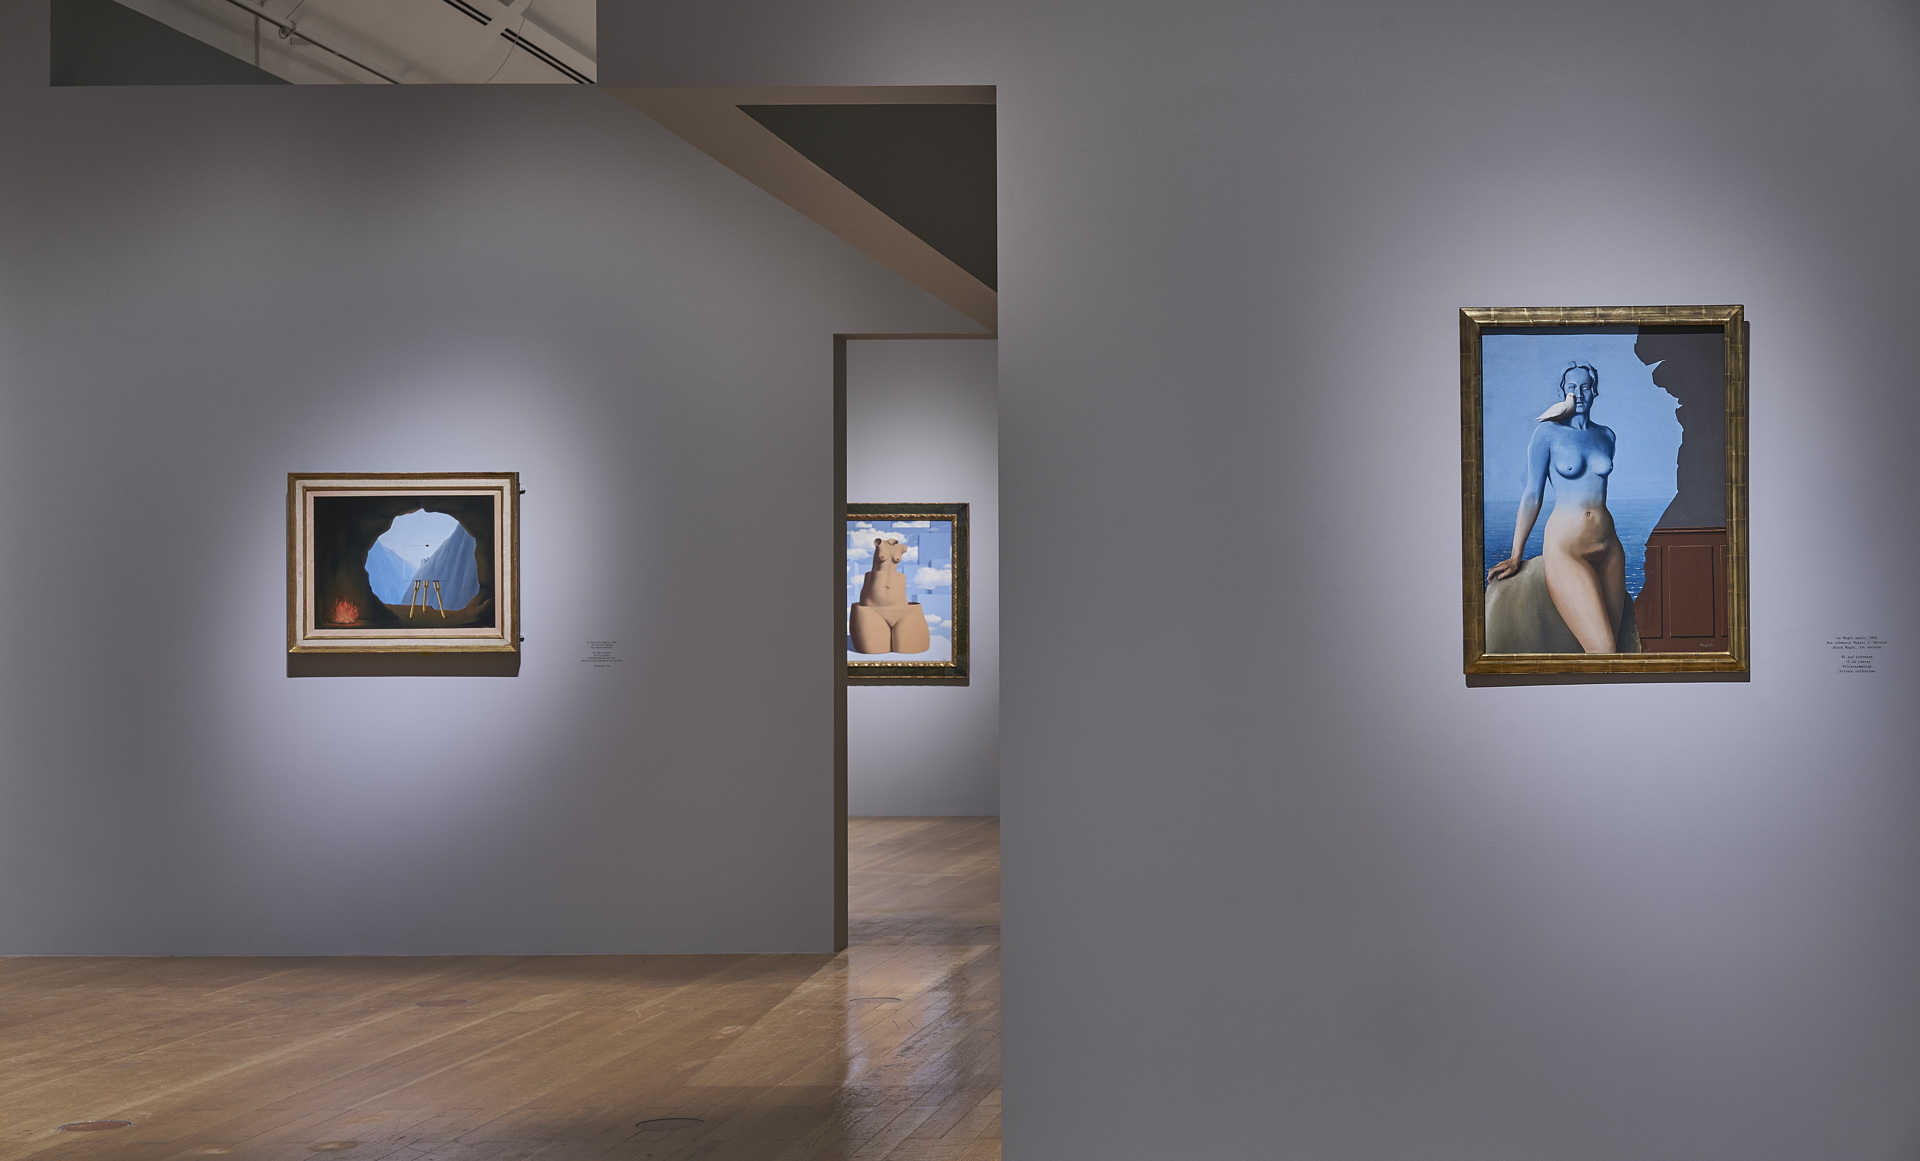 Rene Magritte The Treachery of Images Schirn Kunsthalle